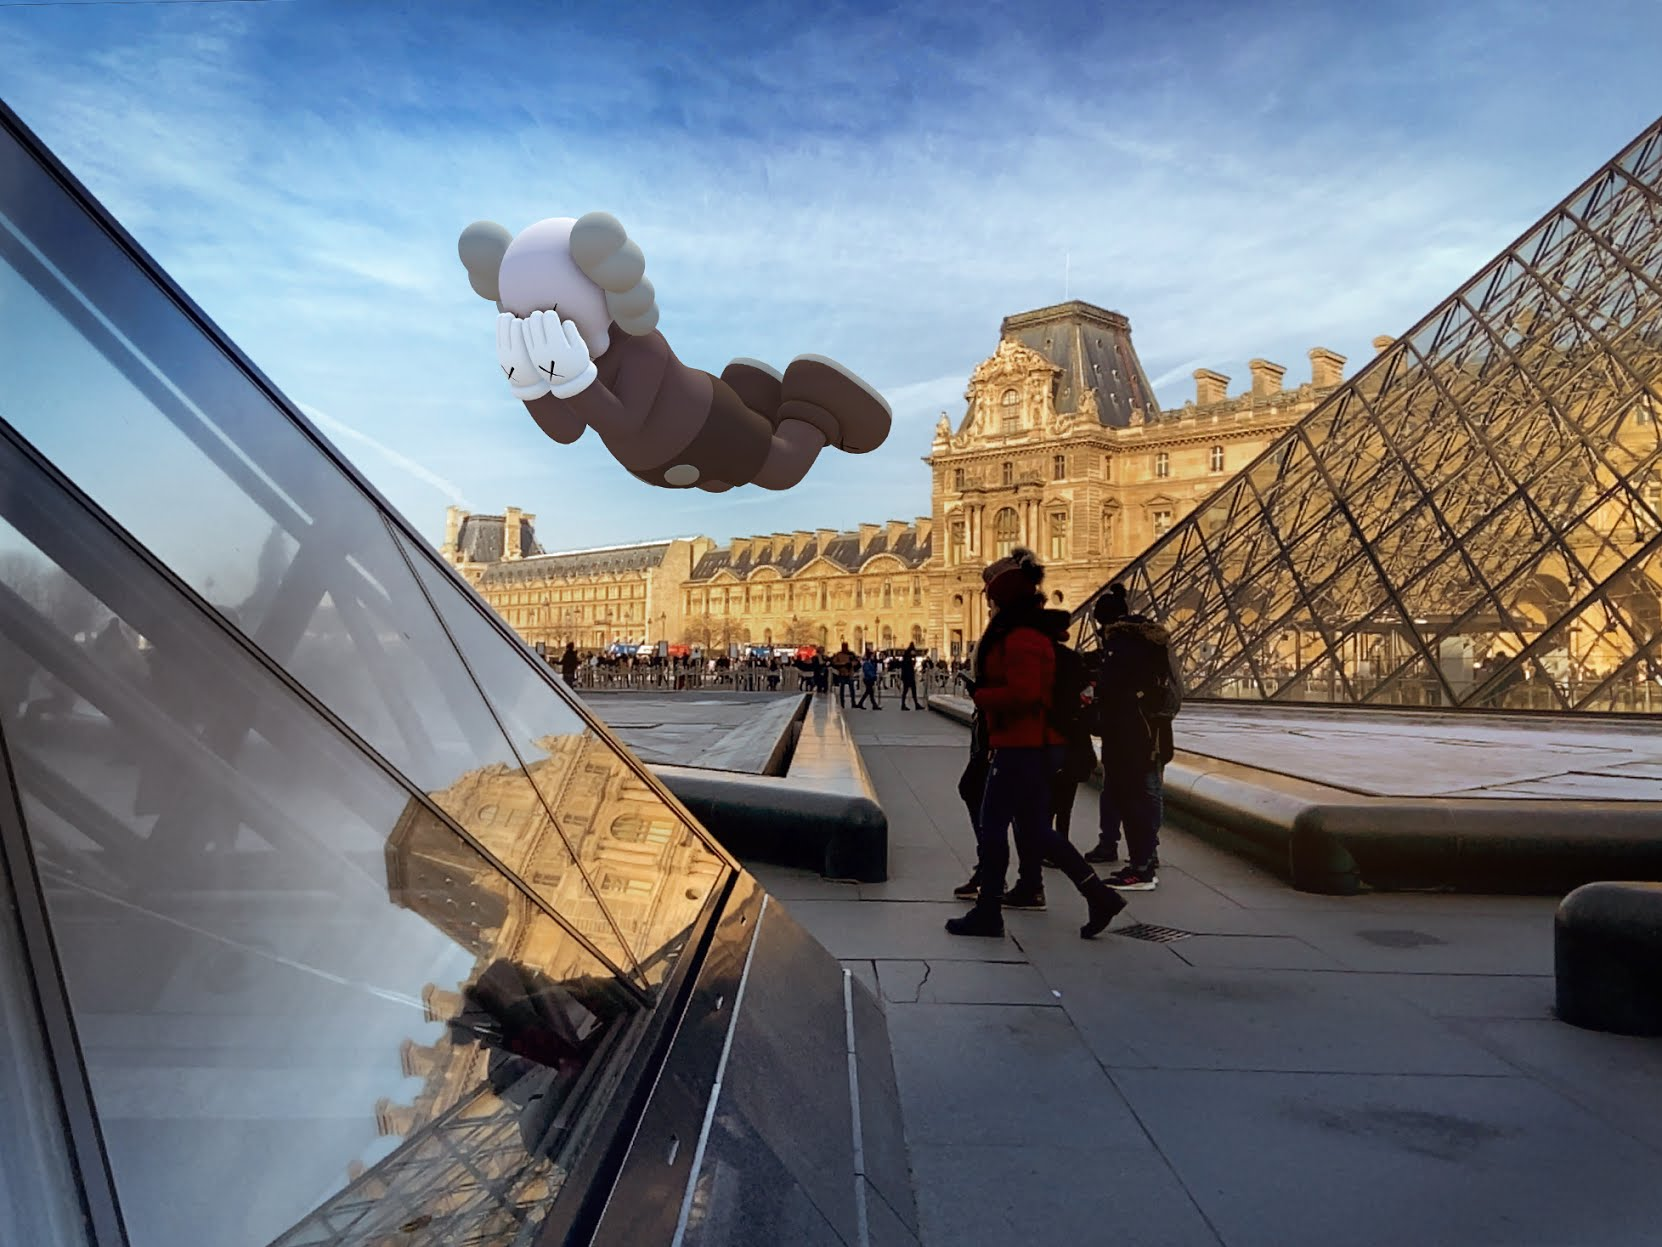 KAWS, COMPANION (EXPANDED) in Paris, 2020, augmented reality. Courtesy: KAWS and Acute Art.